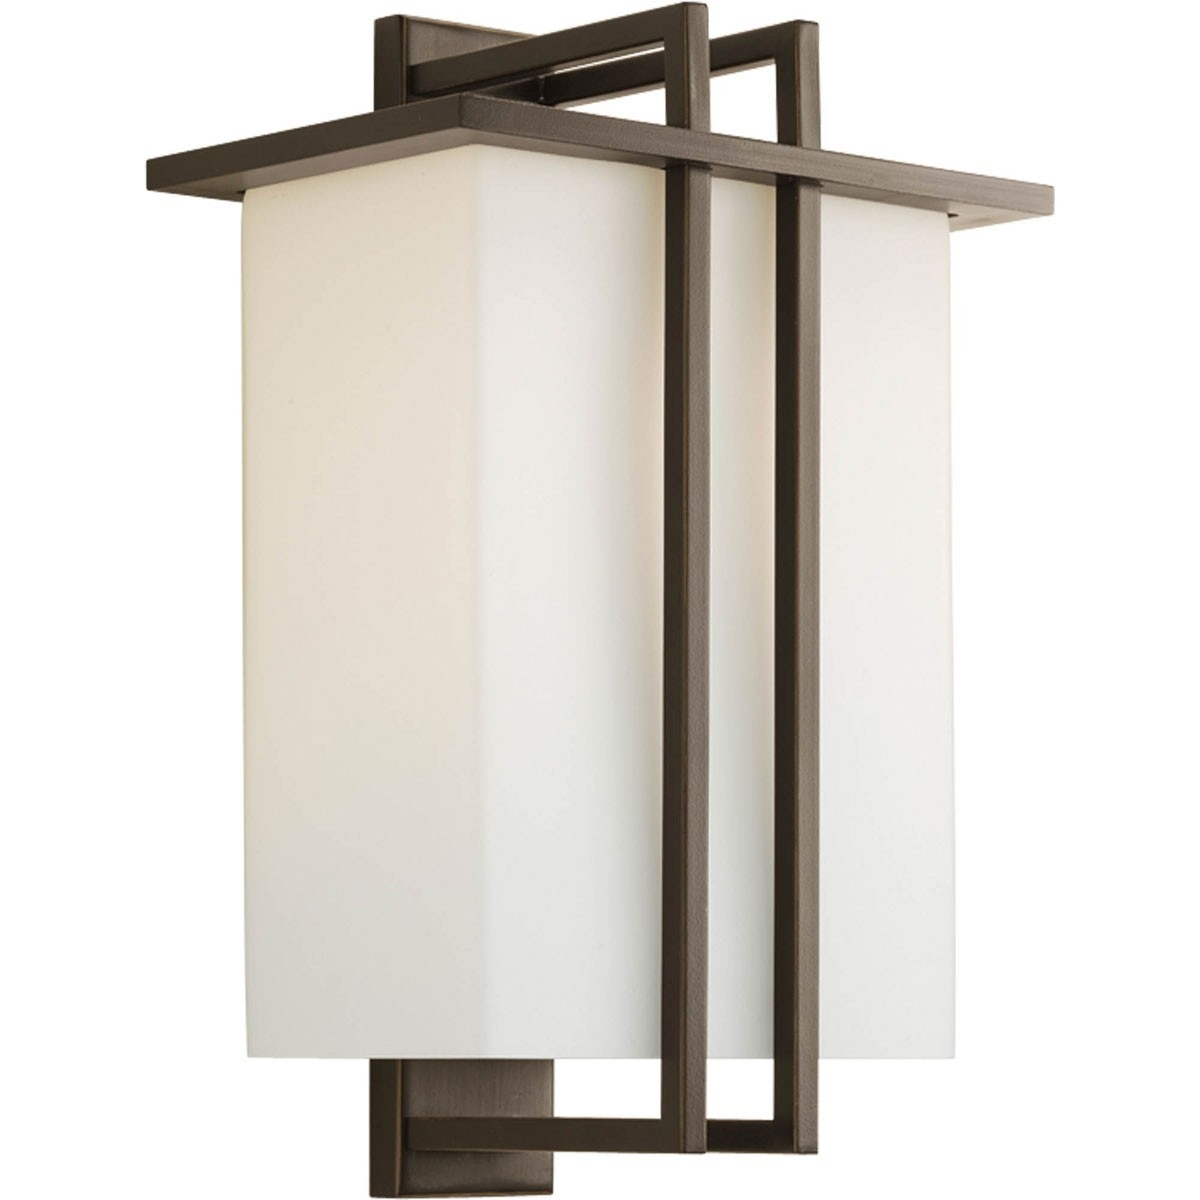 Outdoor Large Wall Lantern With Etched Opal Shades – Progress With Regard To Large Outdoor Wall Light Fixtures (#13 of 15)